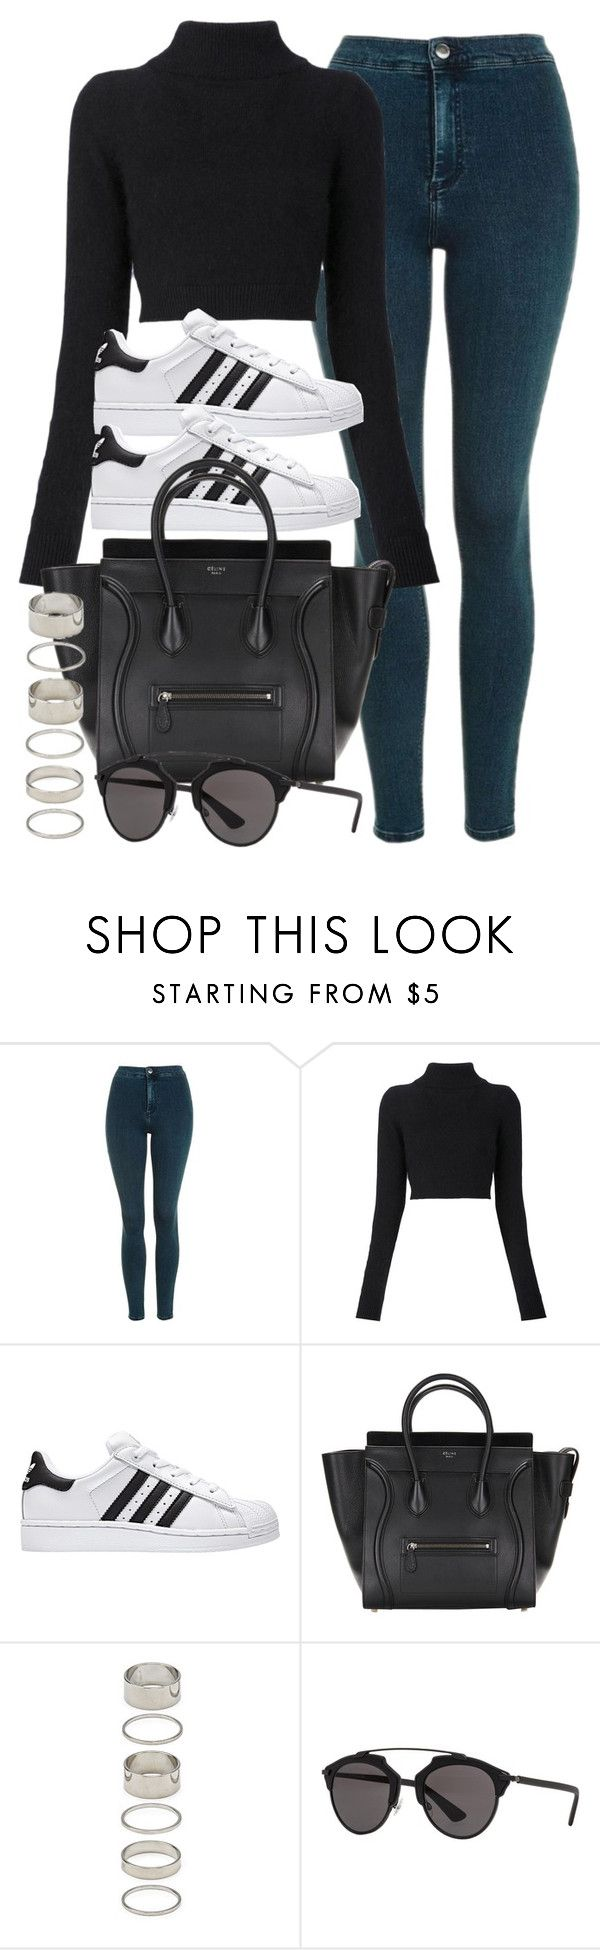 """""""Sin título #11989"""" by vany-alvarado ❤ liked on Polyvore featuring Topshop, Balmain, Forever 21 and Christian Dior"""